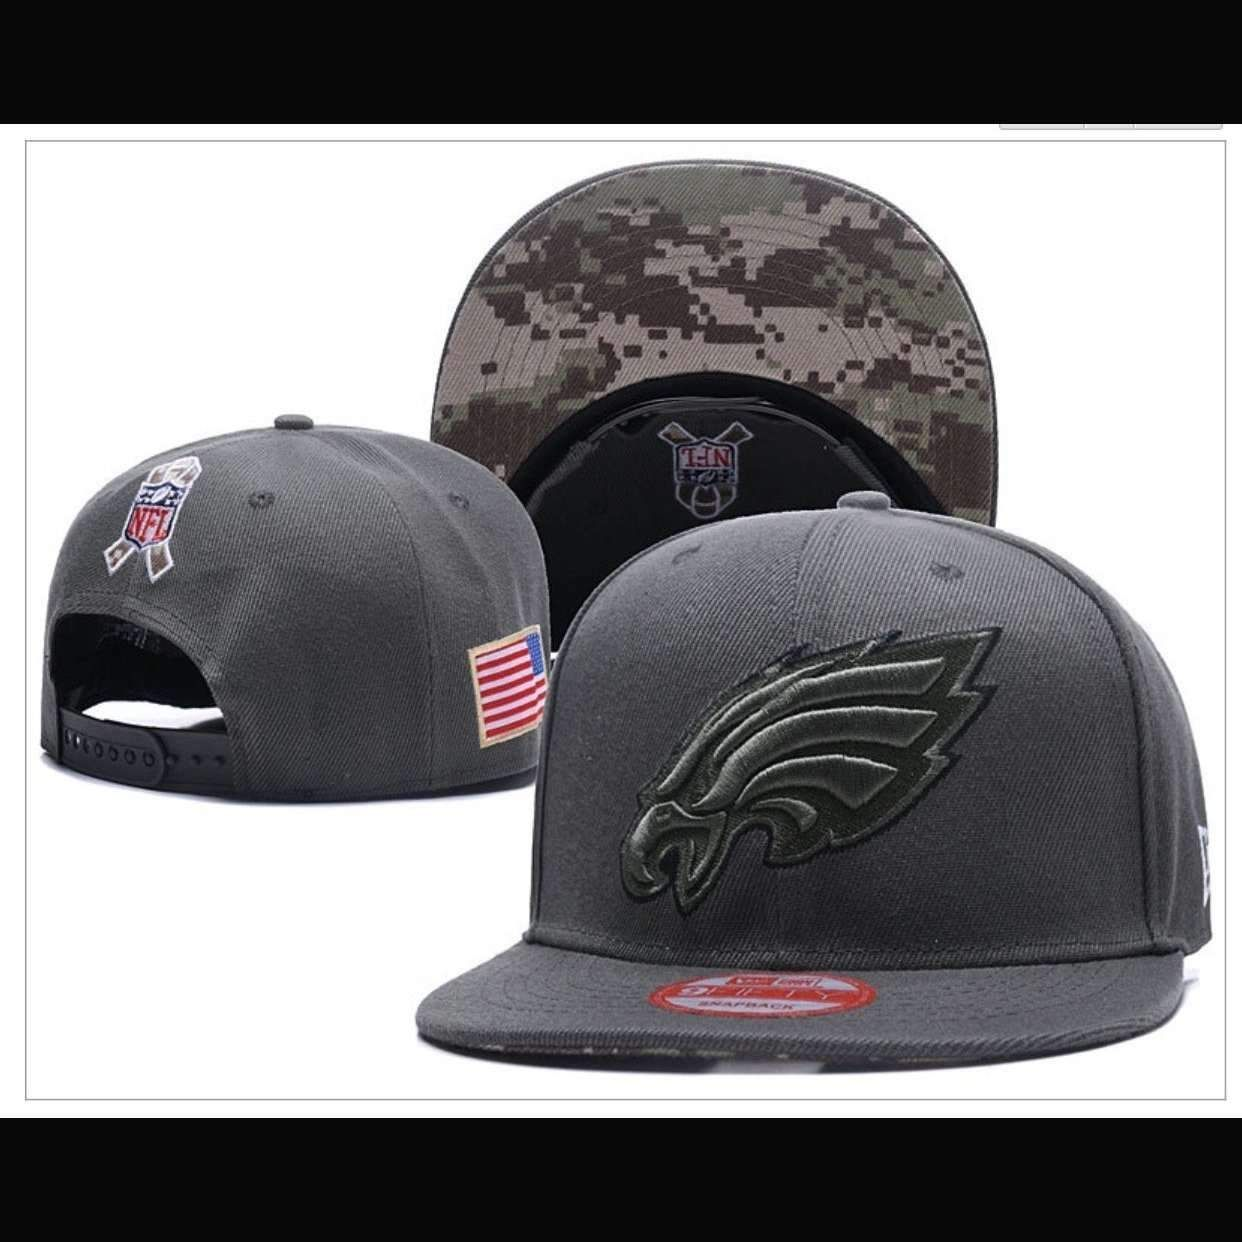 huge discount 1f23b 3d5f7 Caps Hats · Shop and Save more than 50% at The Jersey Barn! New High  Quality Philadelphia